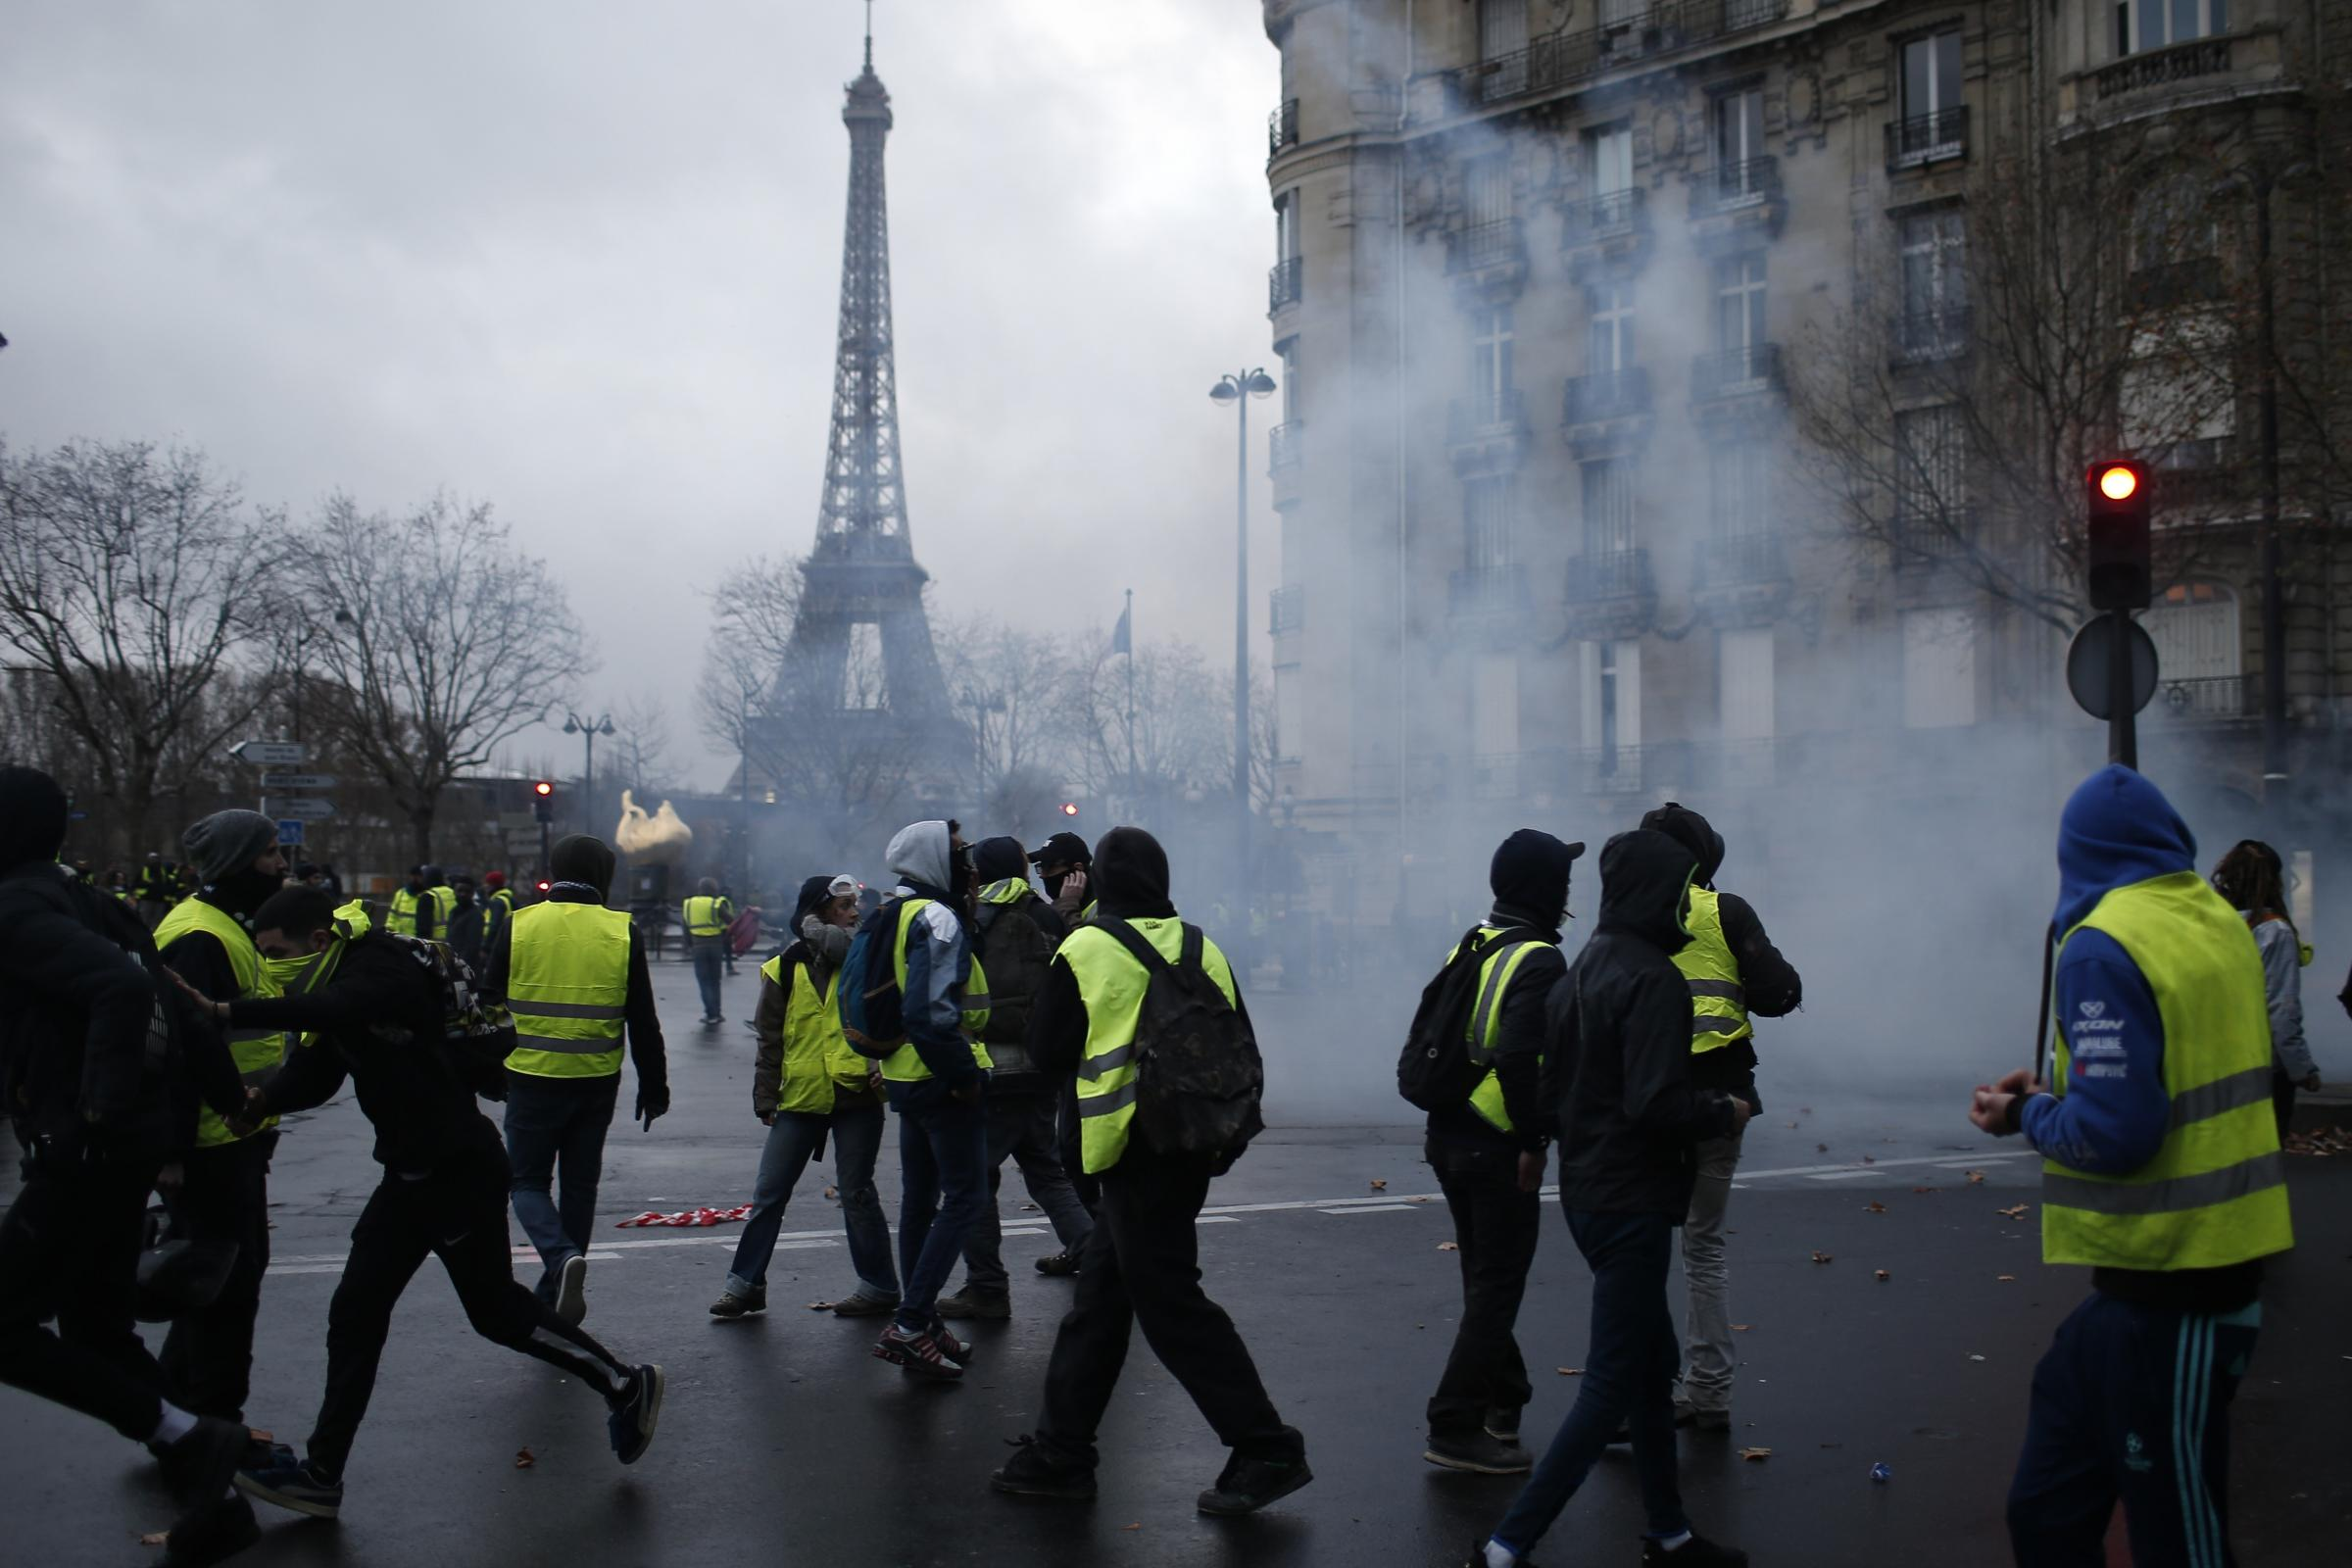 ae89746b34 French police use armoured vans and tear gas in bid to quell Paris protests